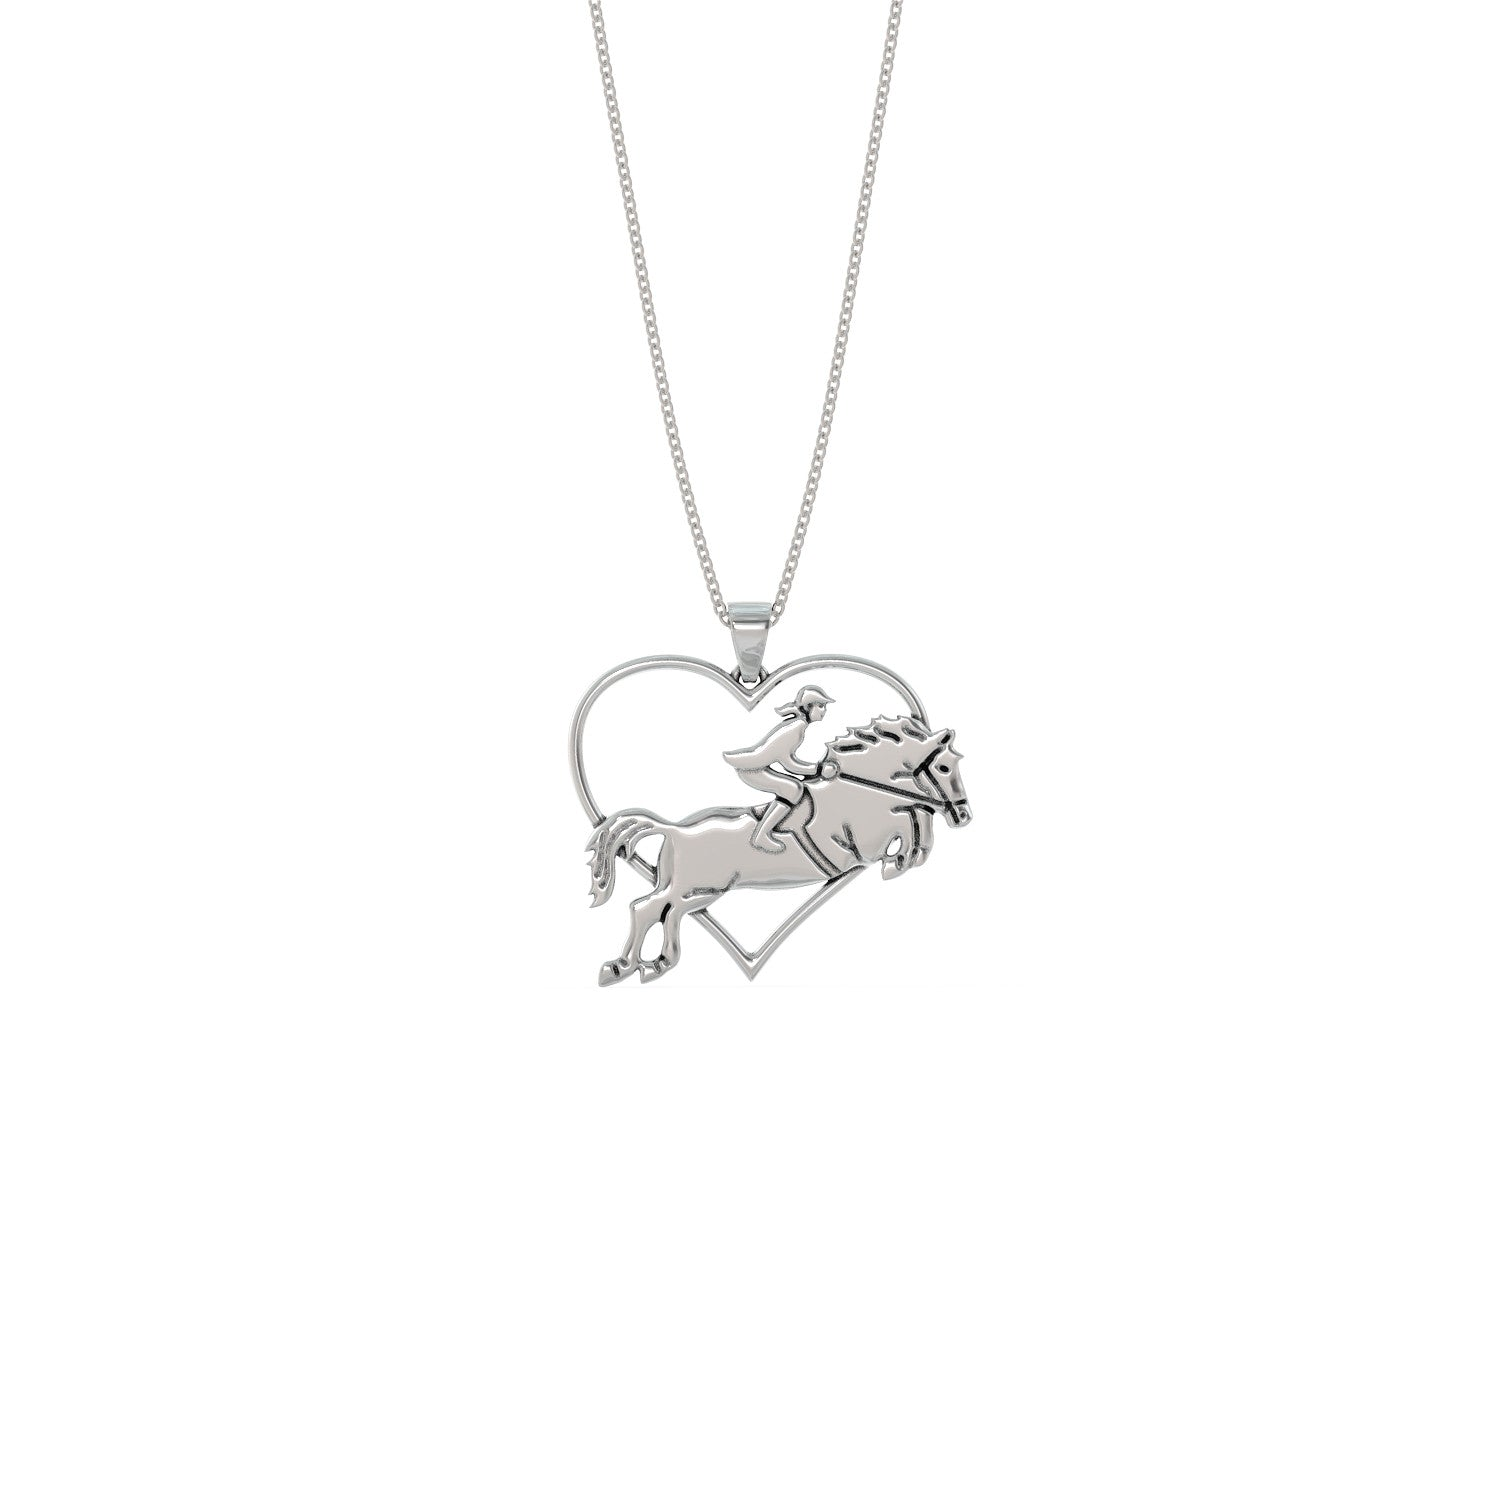 Horse Heart Design Necklace